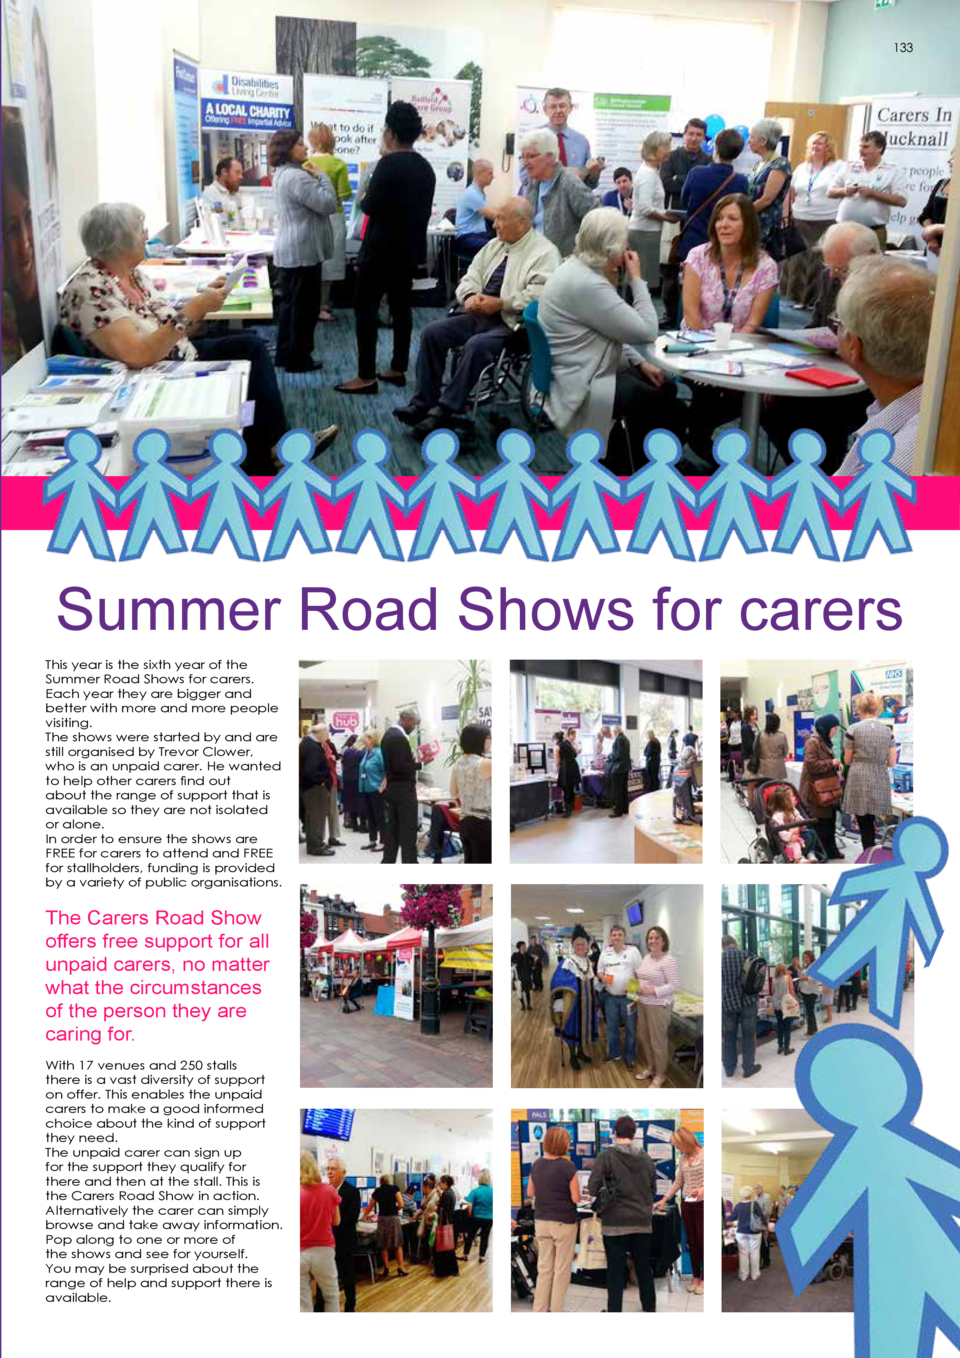 133  Summer Road Shows for carers This year is the sixth year of the Summer Road Shows for carers. Each year they are bigg...